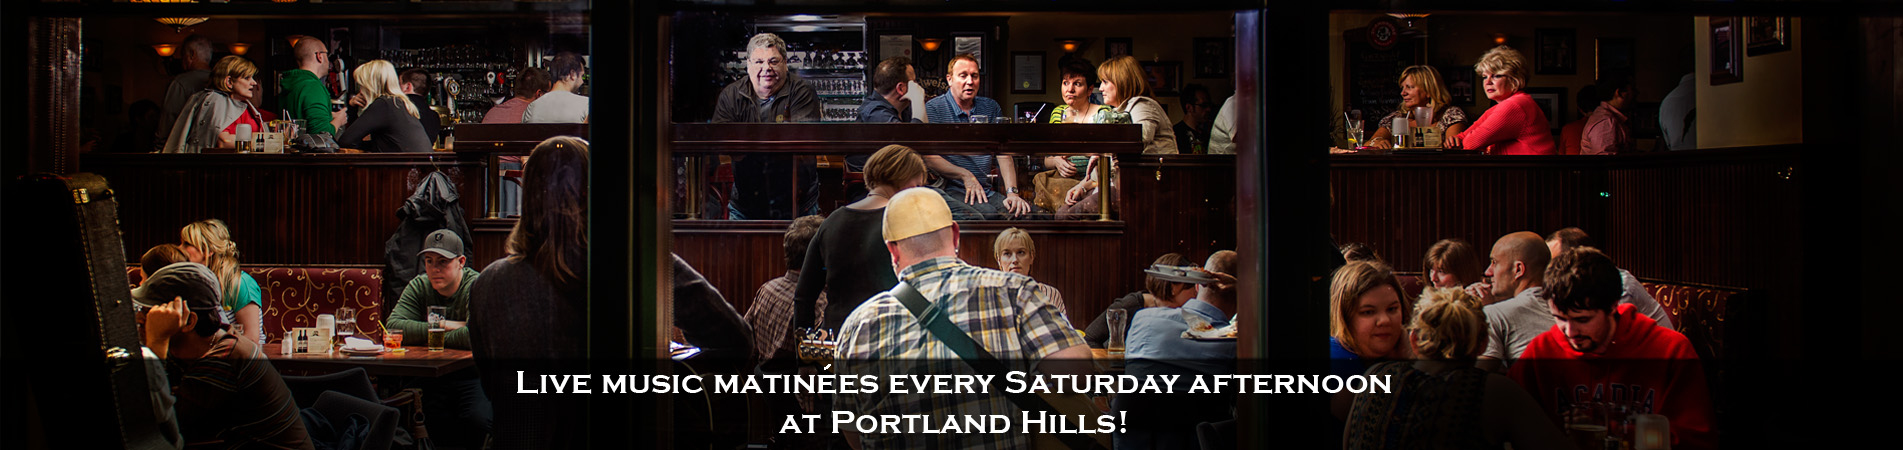 Live music matinees every Saturday afternoon at Portland Hills!